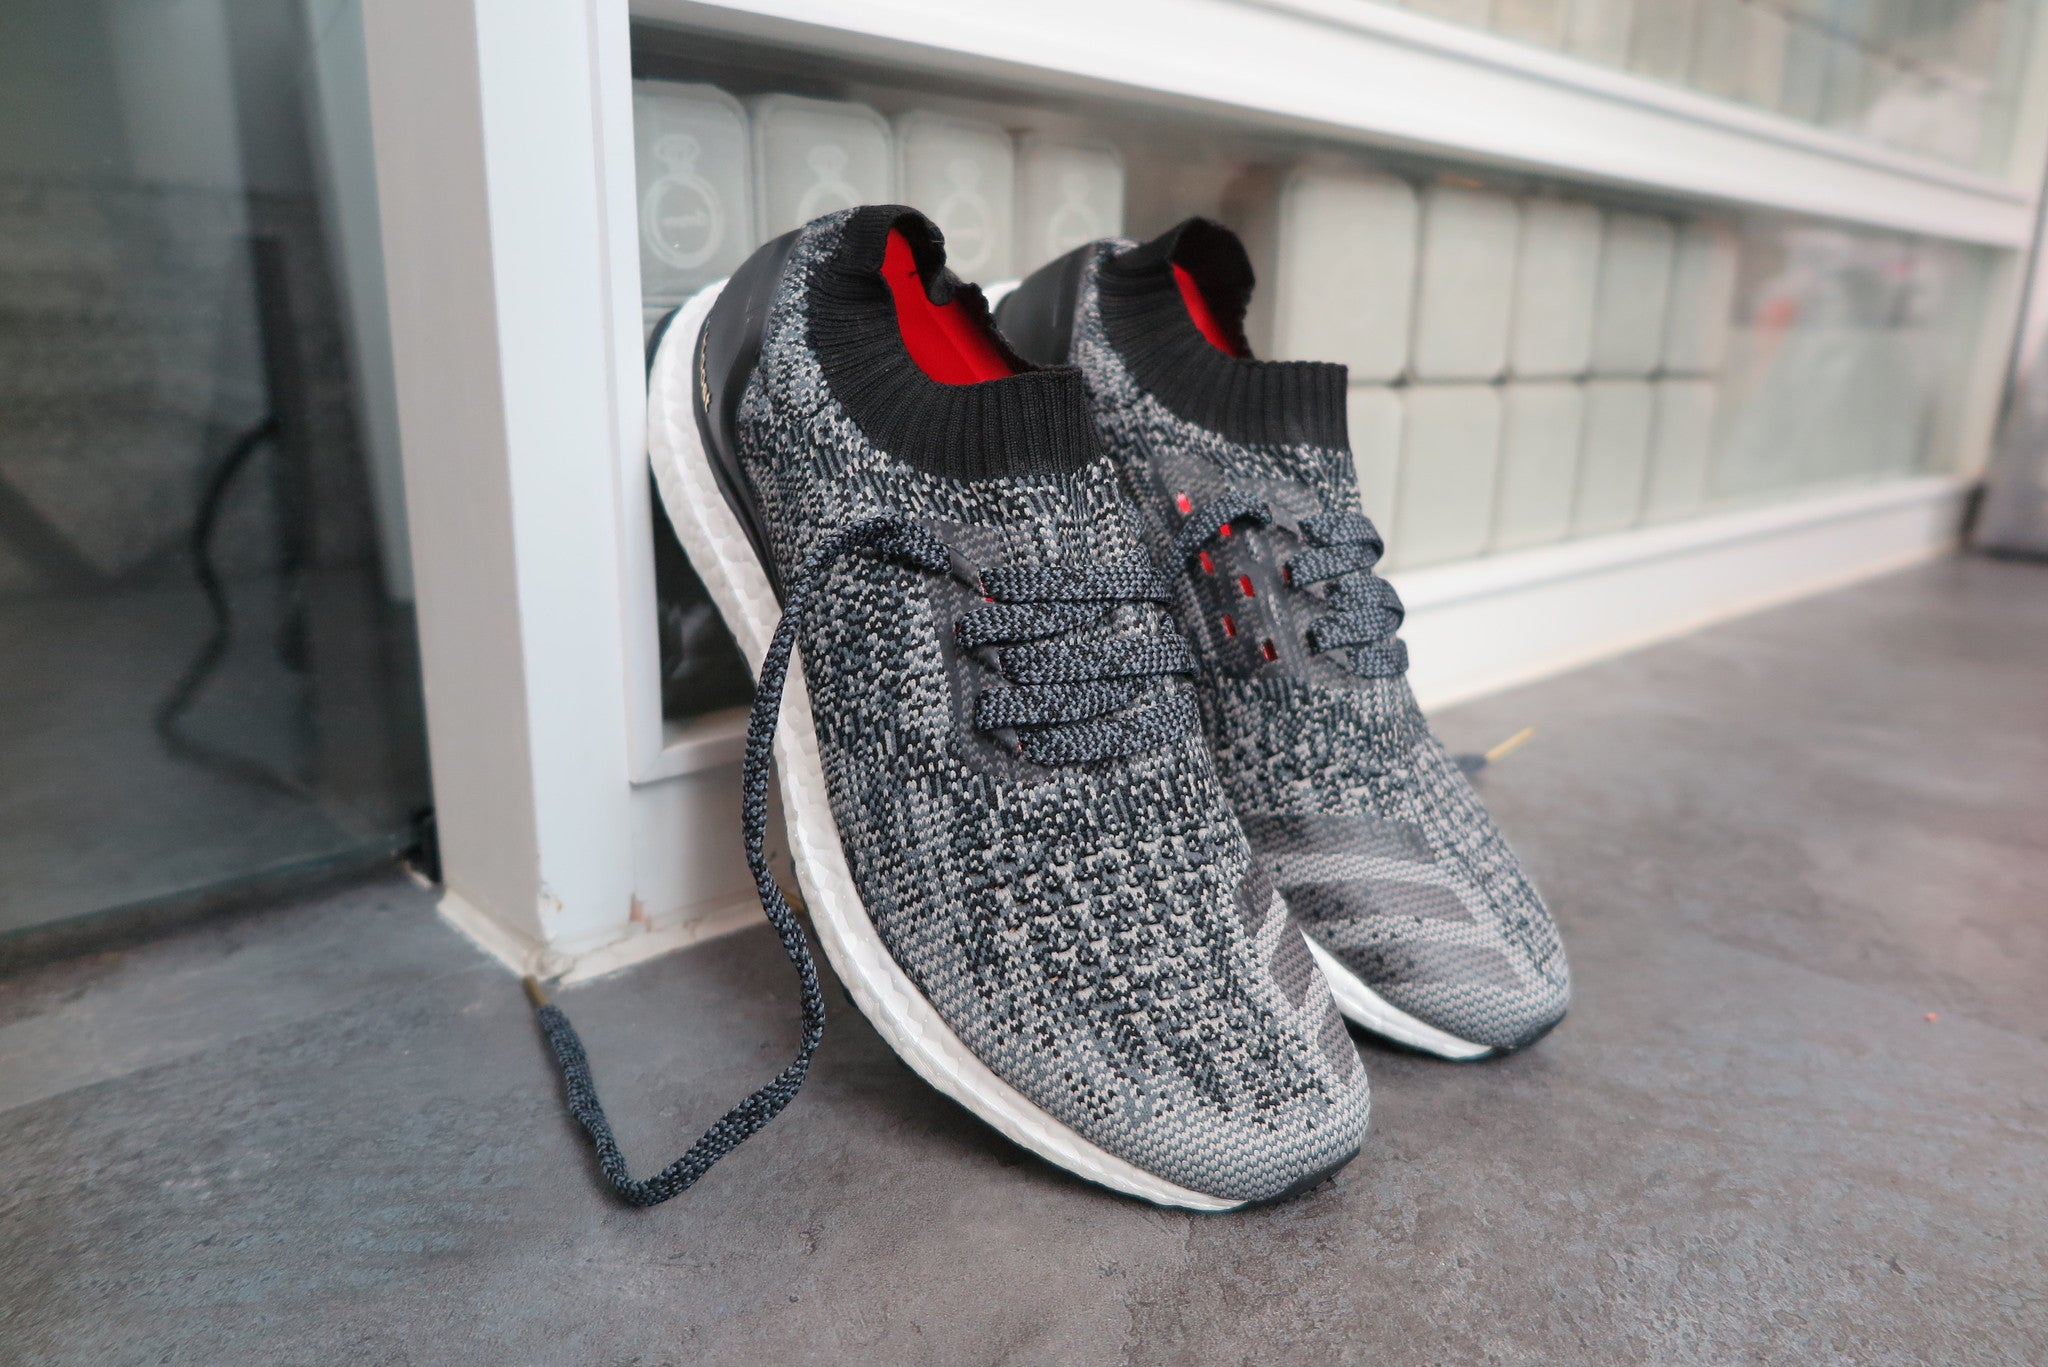 f9e4451dee1 Adidas Ultra Boost Uncaged Black Solid Grey Gold Metallic wallbank ...